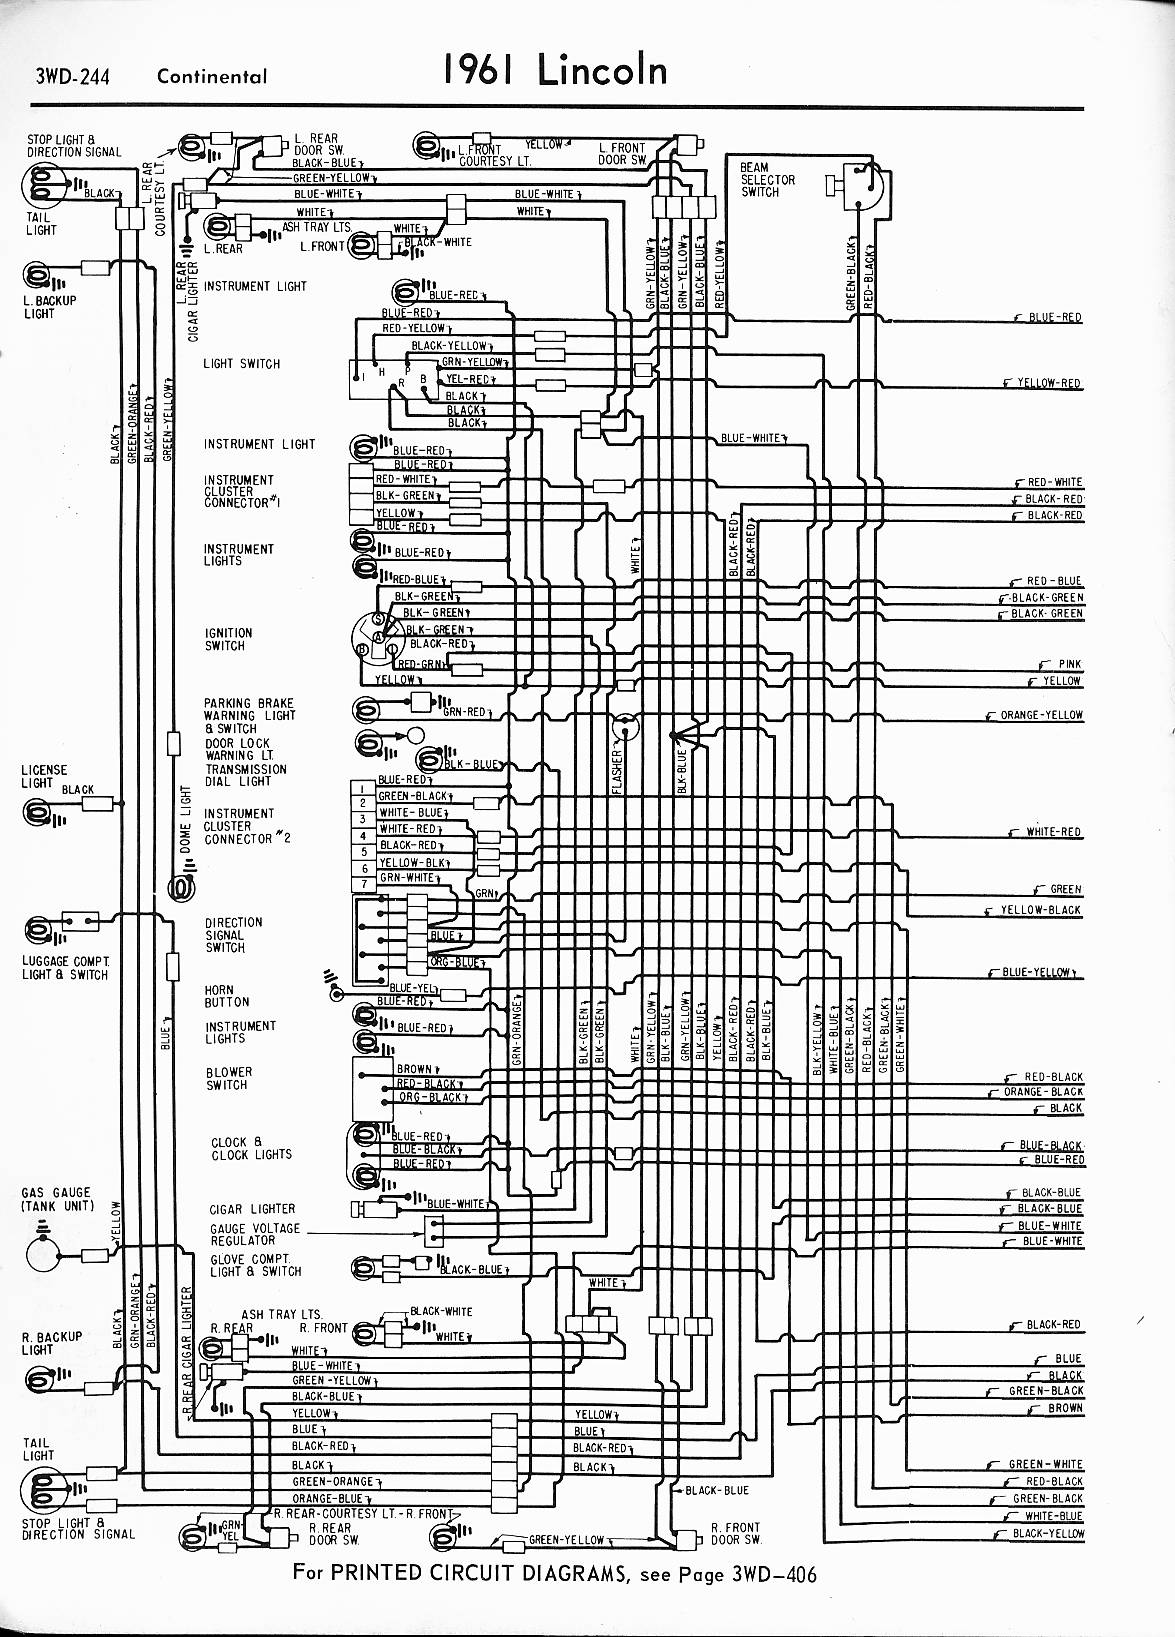 1995 jeep grand cherokee wiring diagram swot analysis template diagrams and free manual ebooks